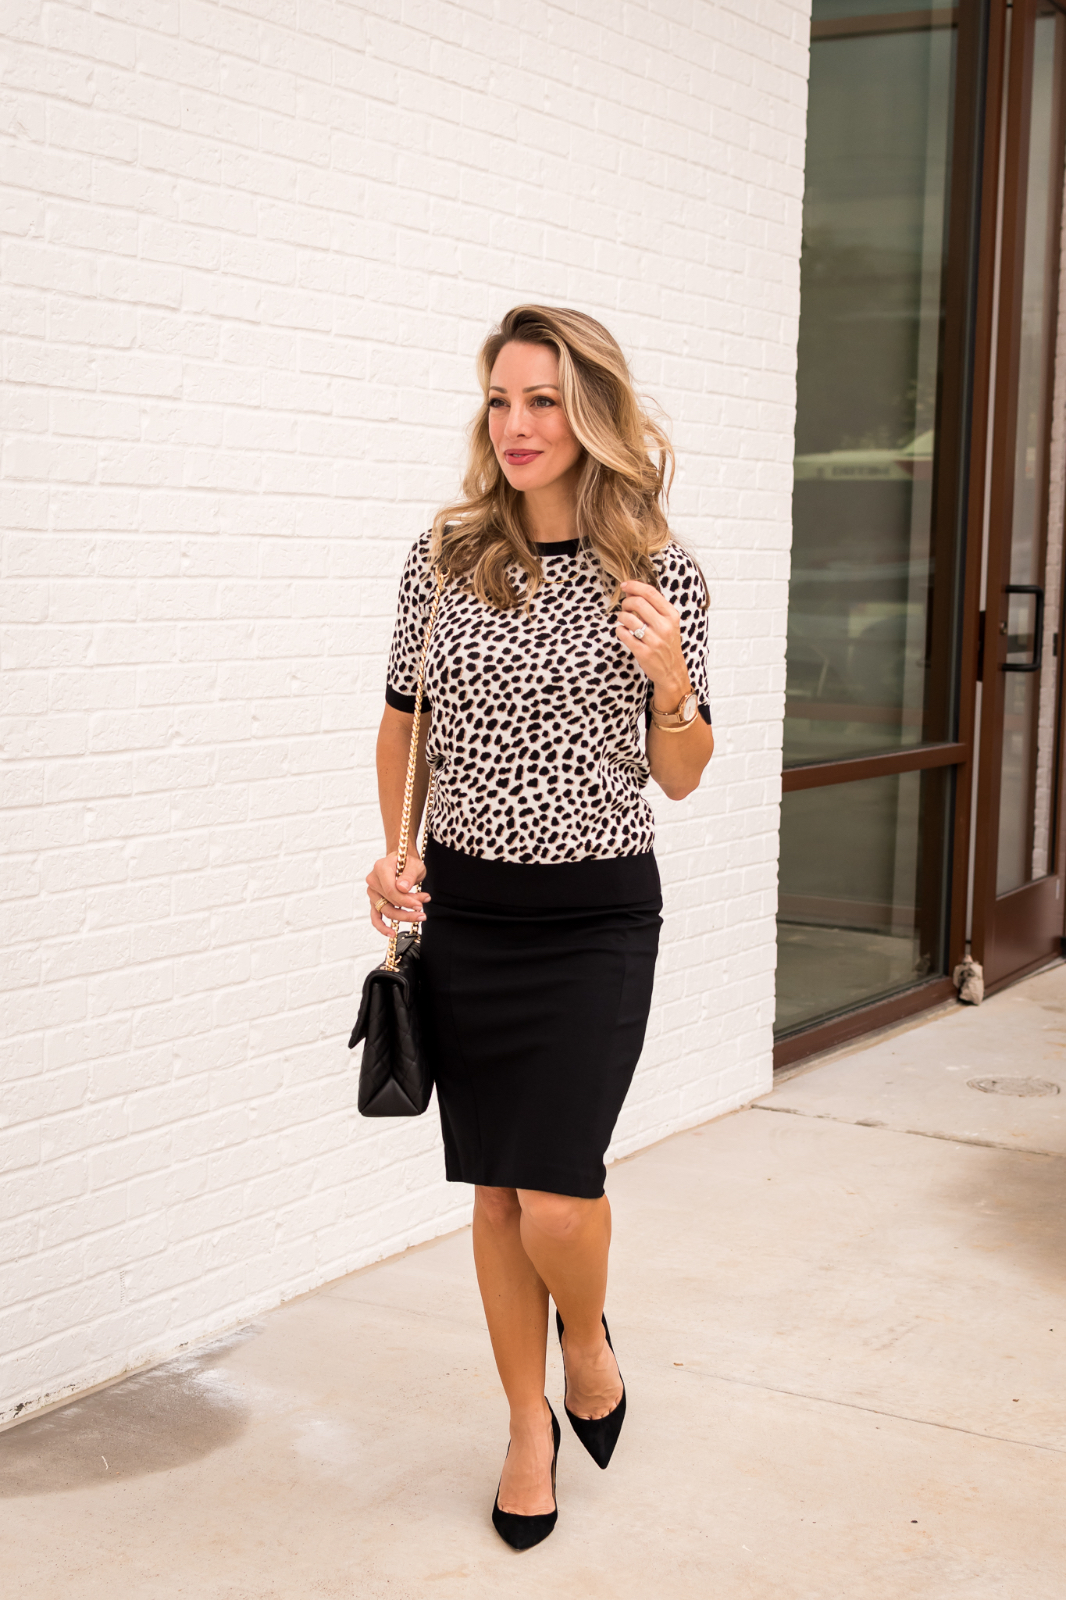 Work Outfit -leopard sweater and black skirt 6